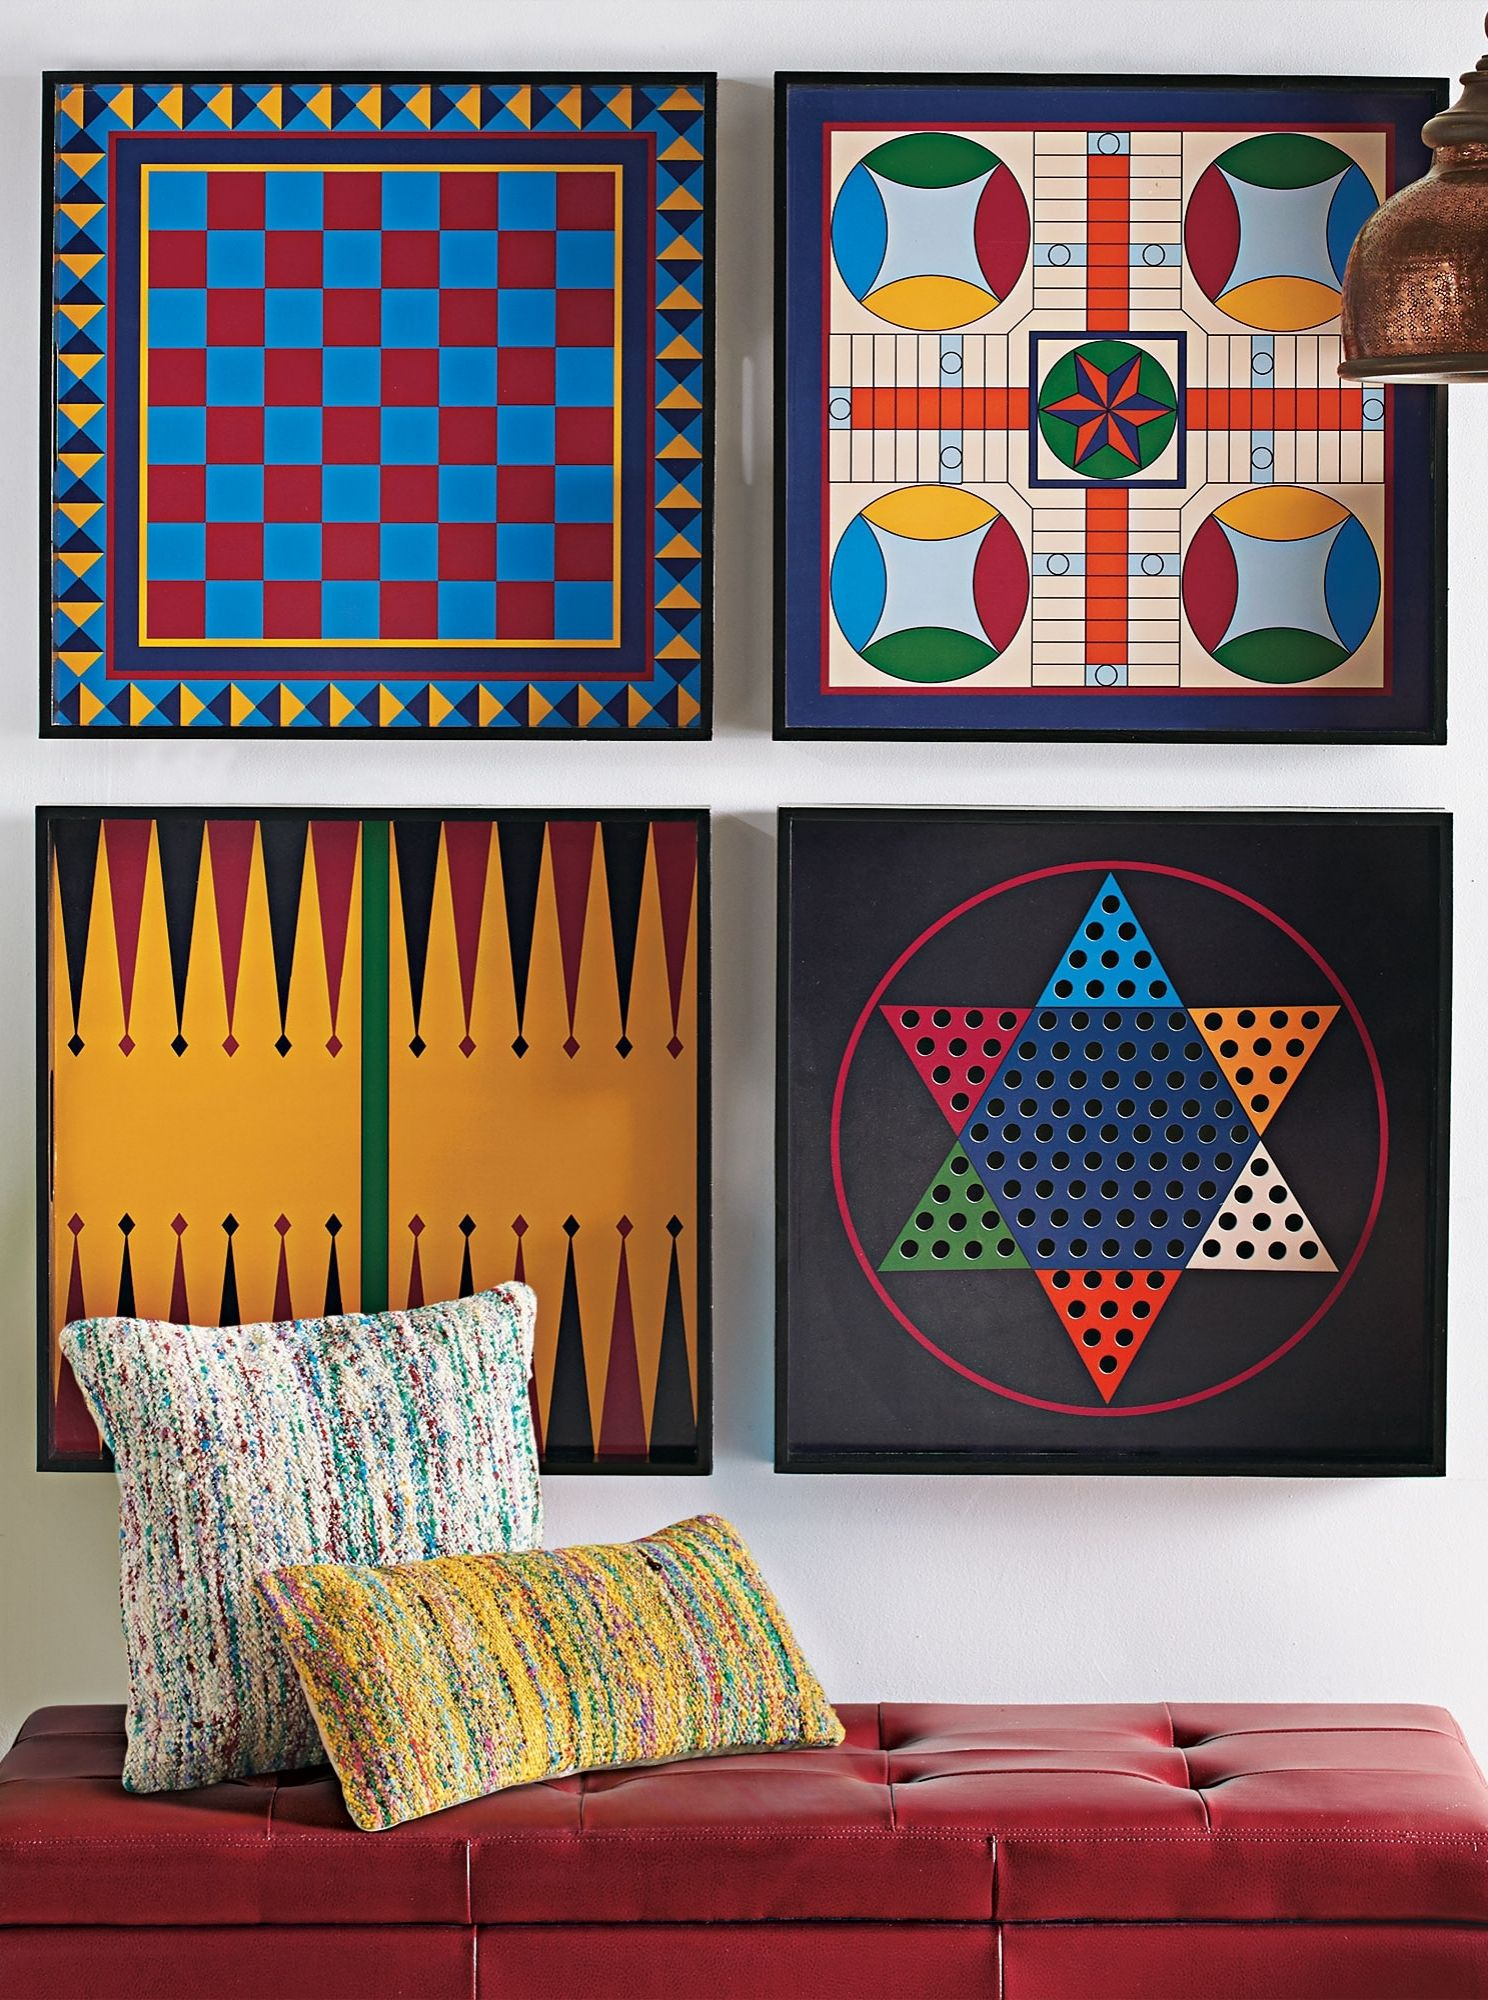 Hang them as graphic art on the wall. Use them as colorful